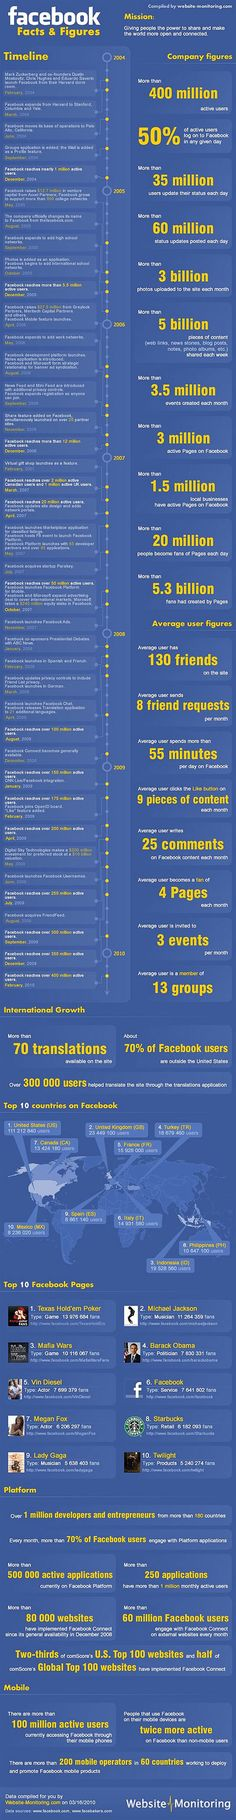 facebook facts and figures 2010.